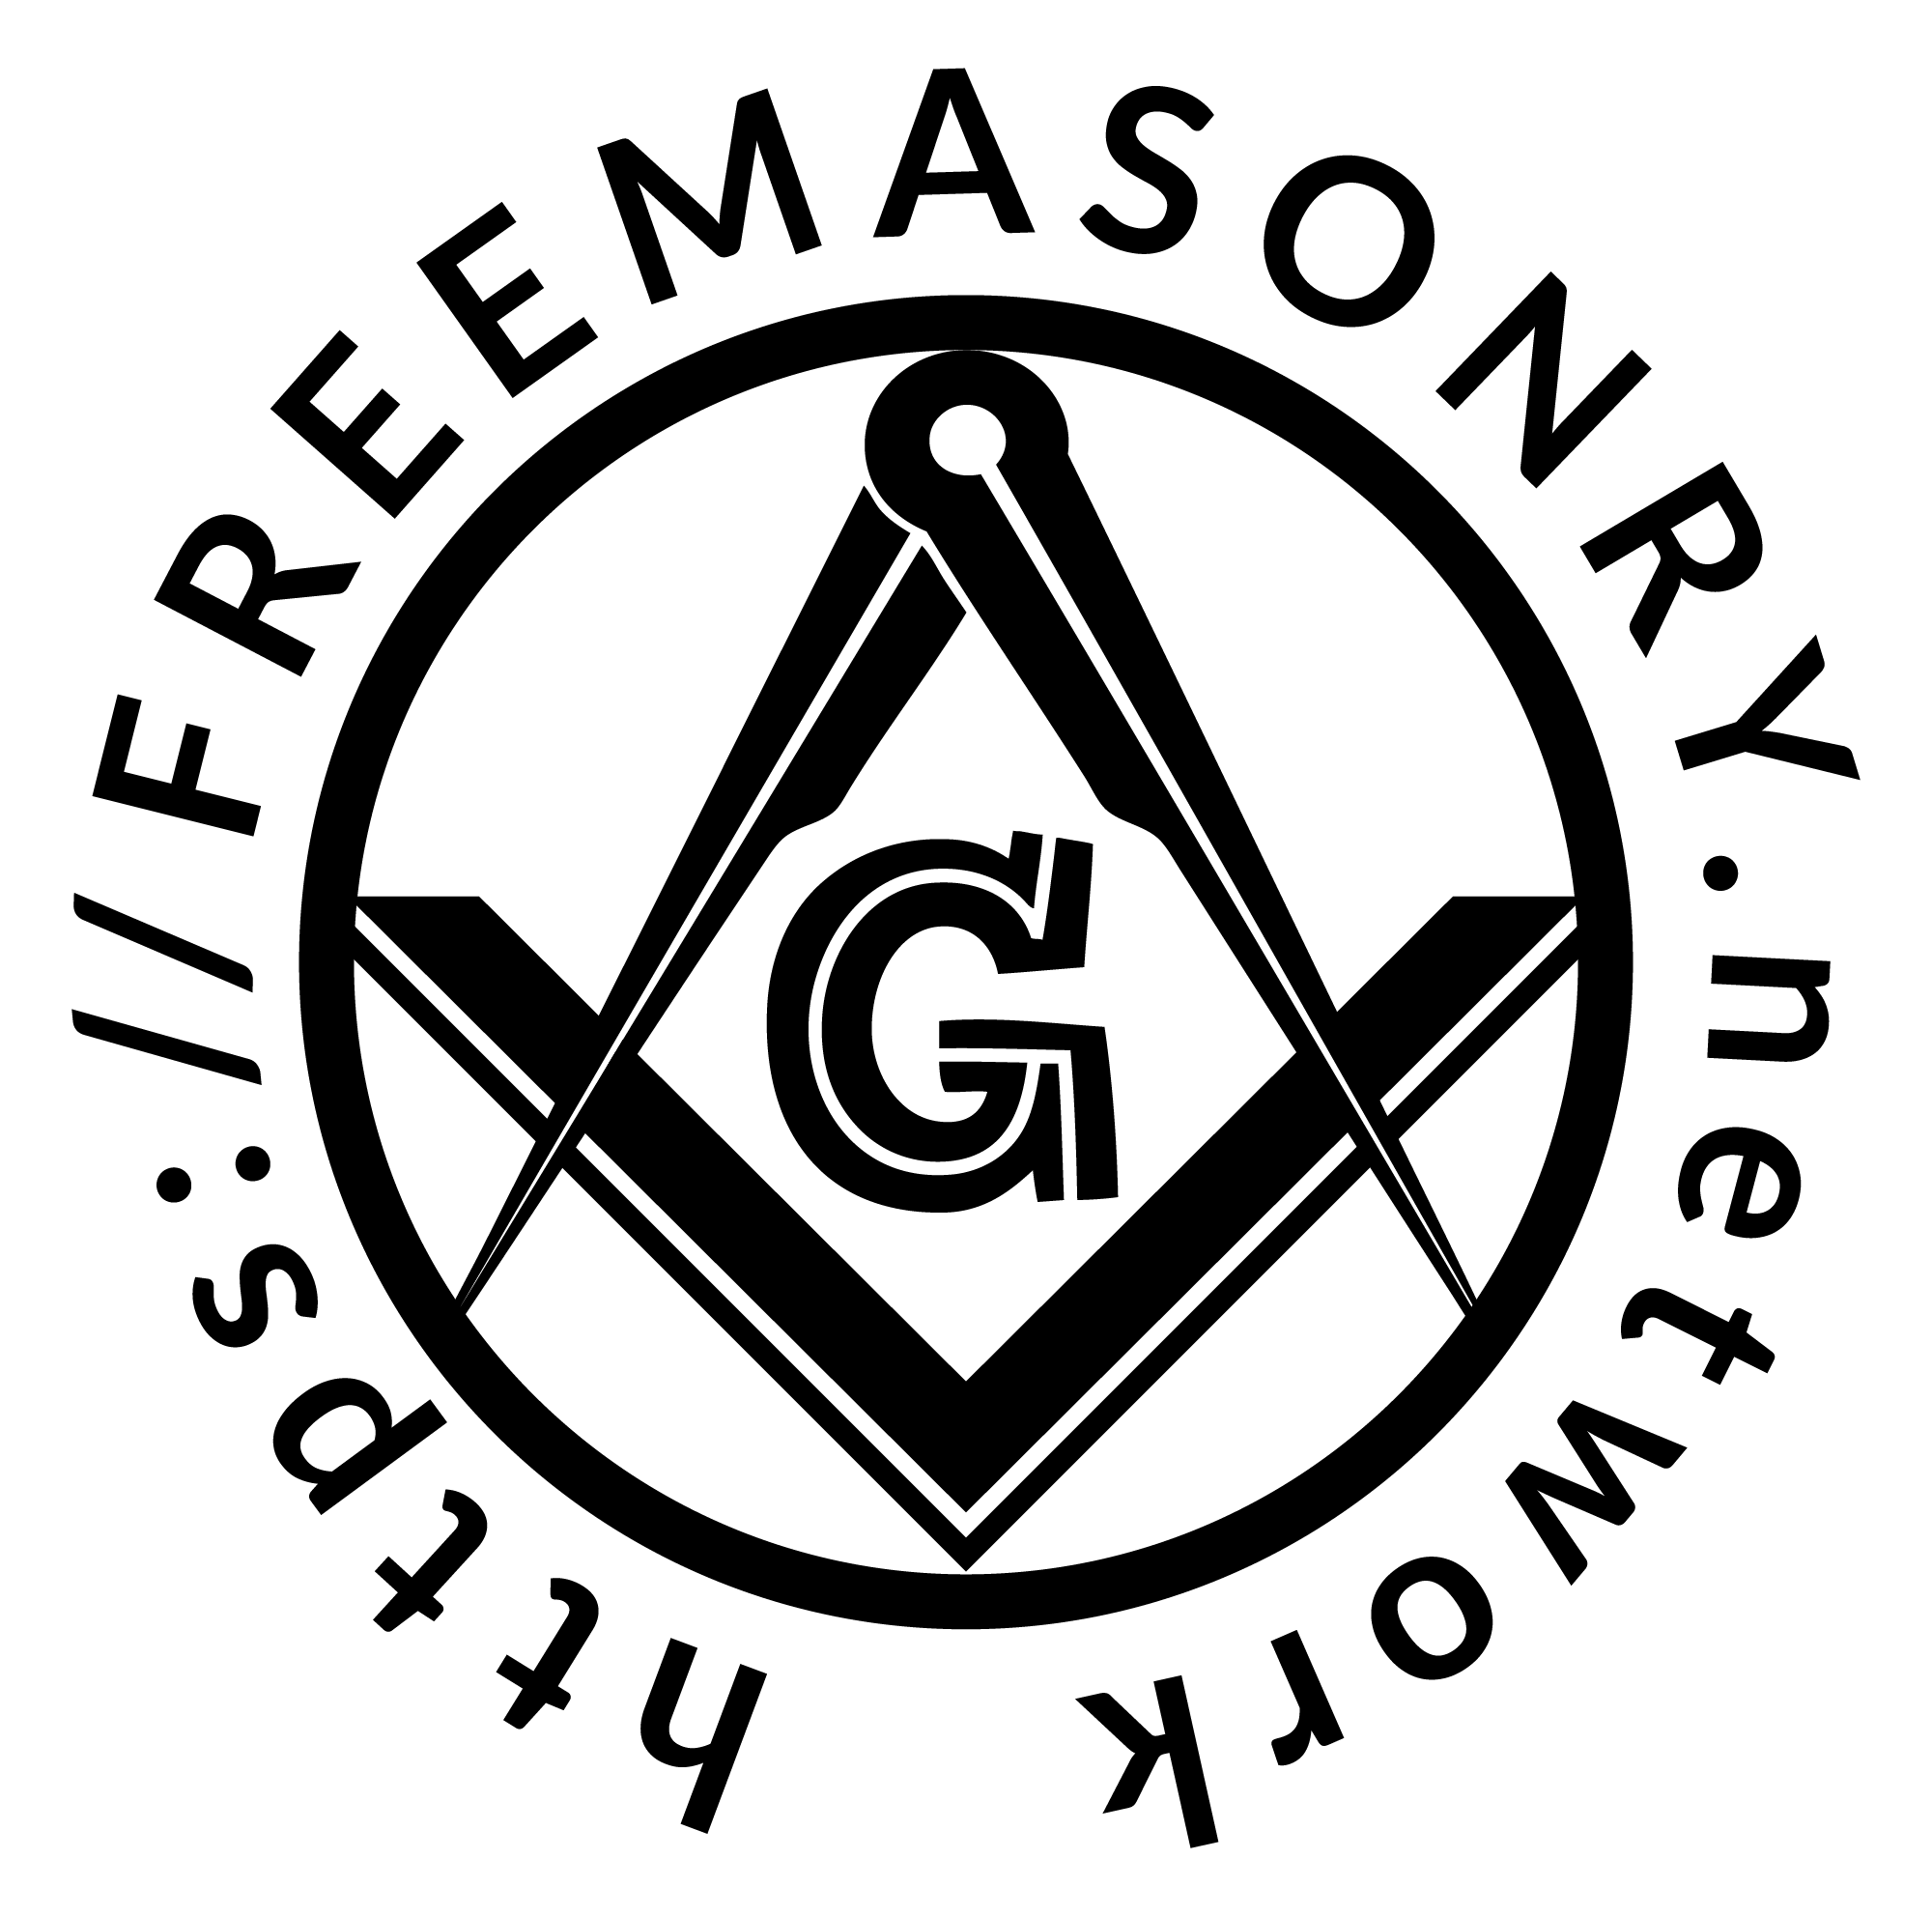 England - Freemasons grant to Hope Support Services